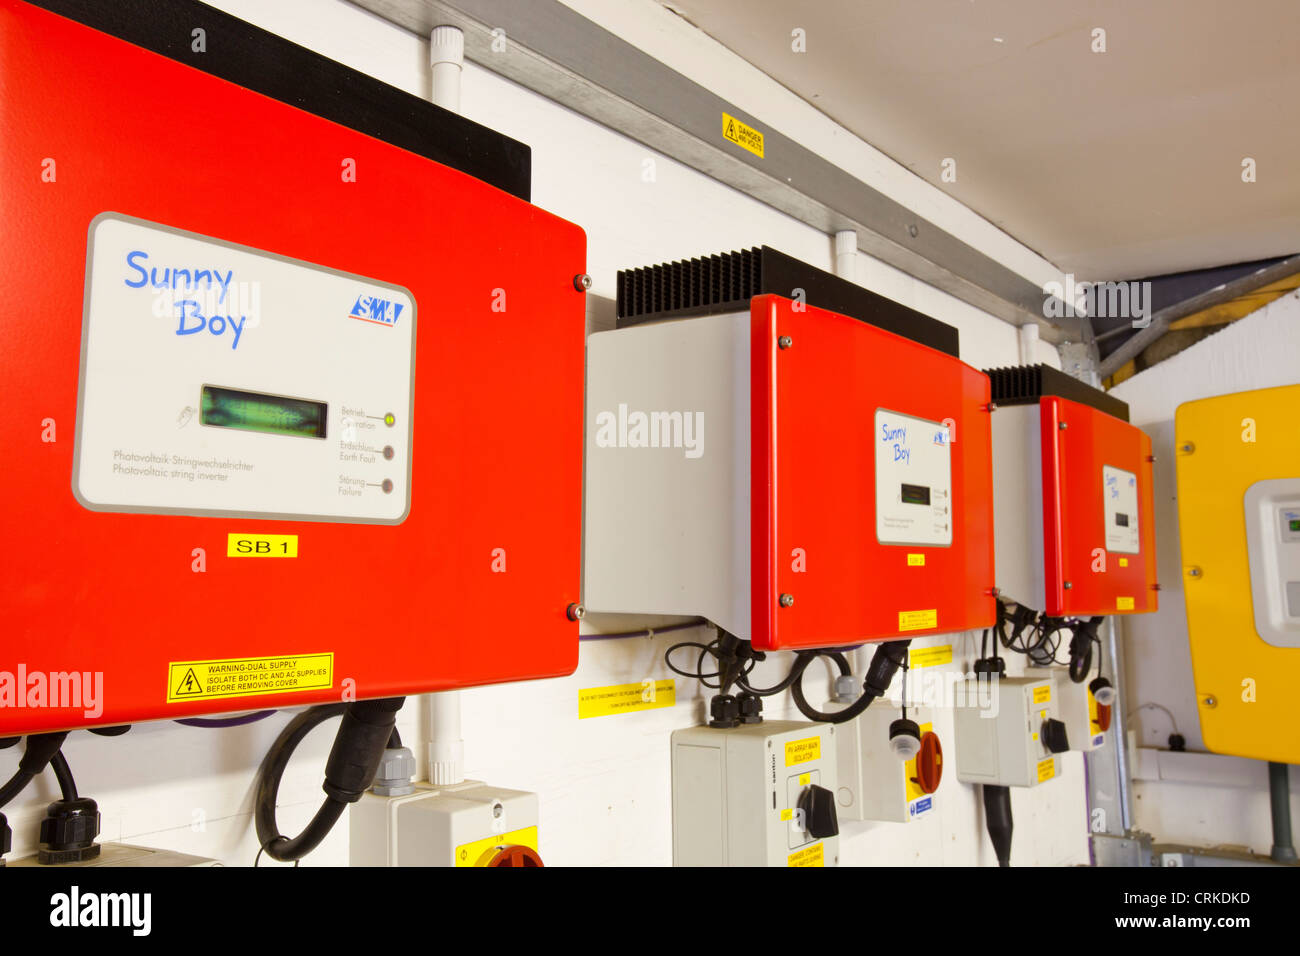 Solar Inverter Stock Photos Amp Solar Inverter Stock Images